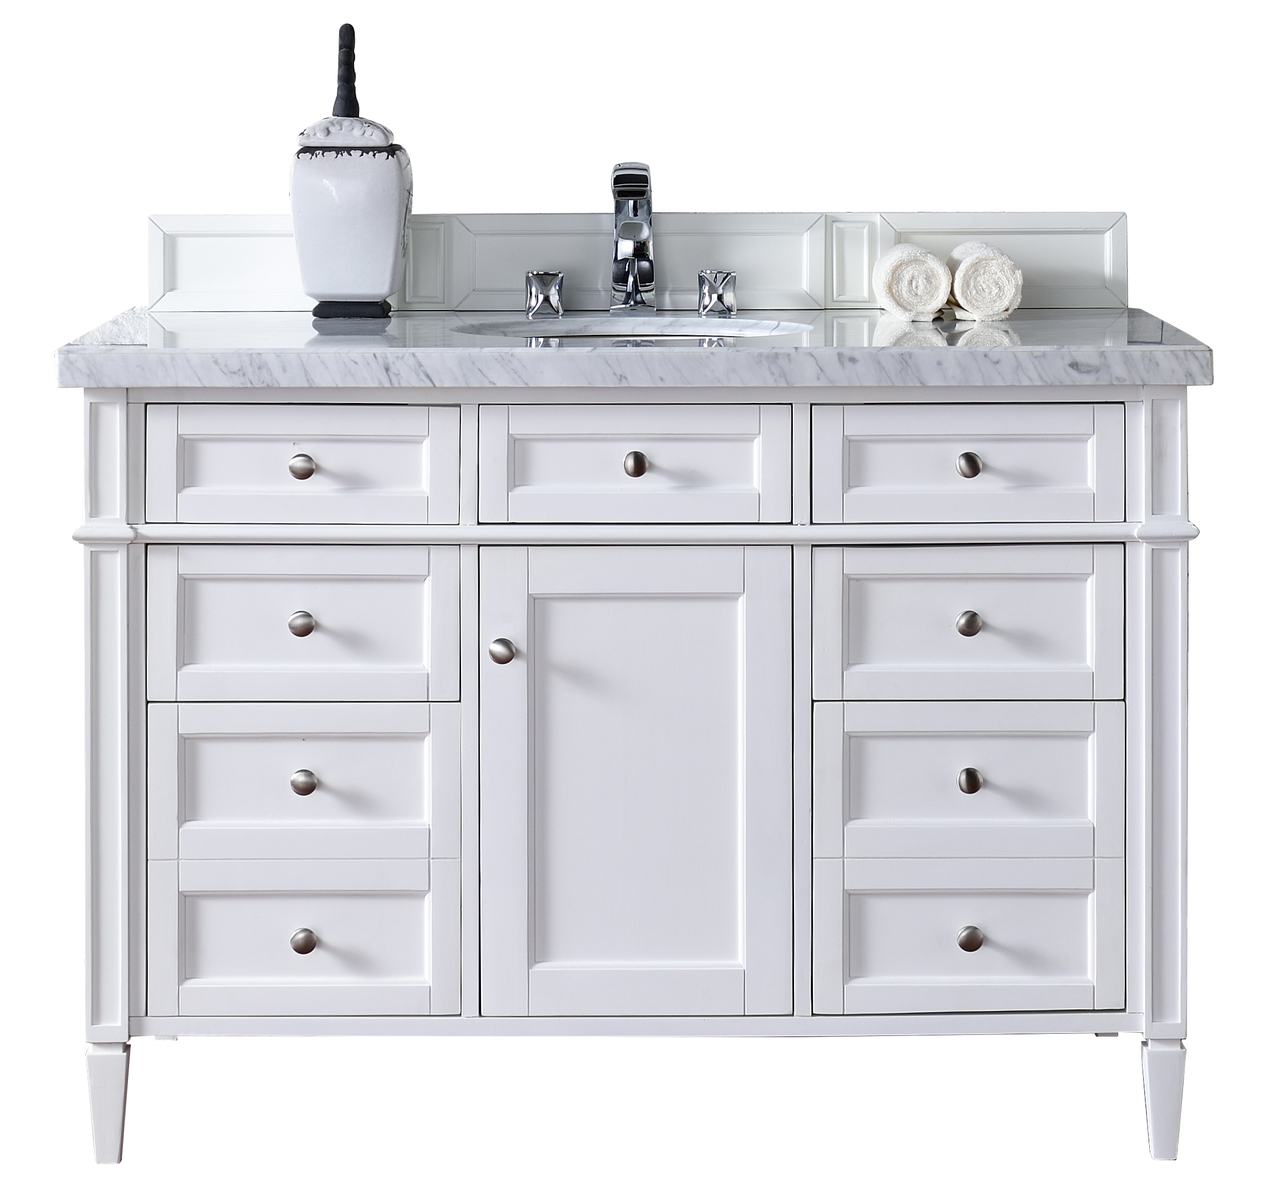 Contemporary 48 inch single bathroom vanity white finish for Bathroom 48 inch vanity